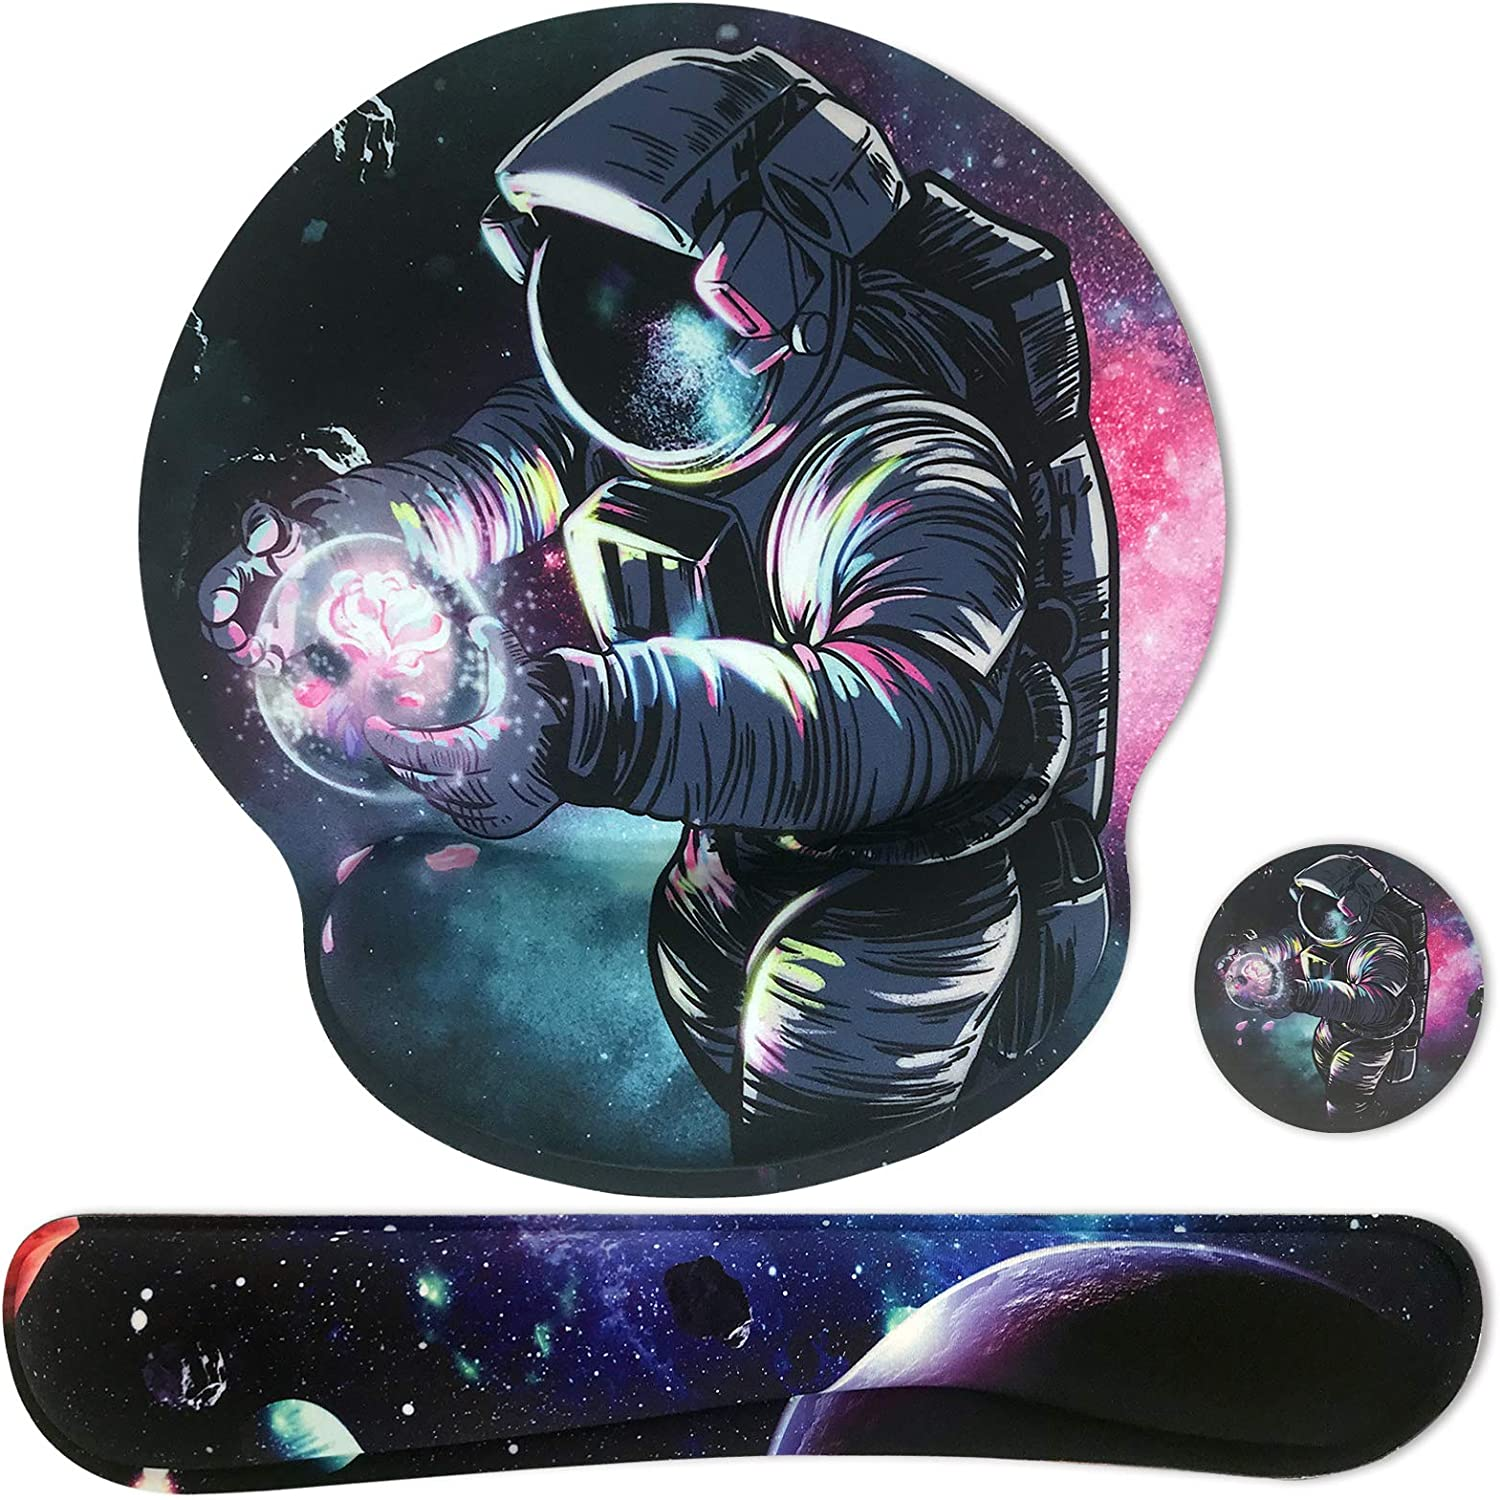 Sosolong Space Mouse pad Omaha Mall for Boys Gaming pa Astronaut and NEW before selling ☆